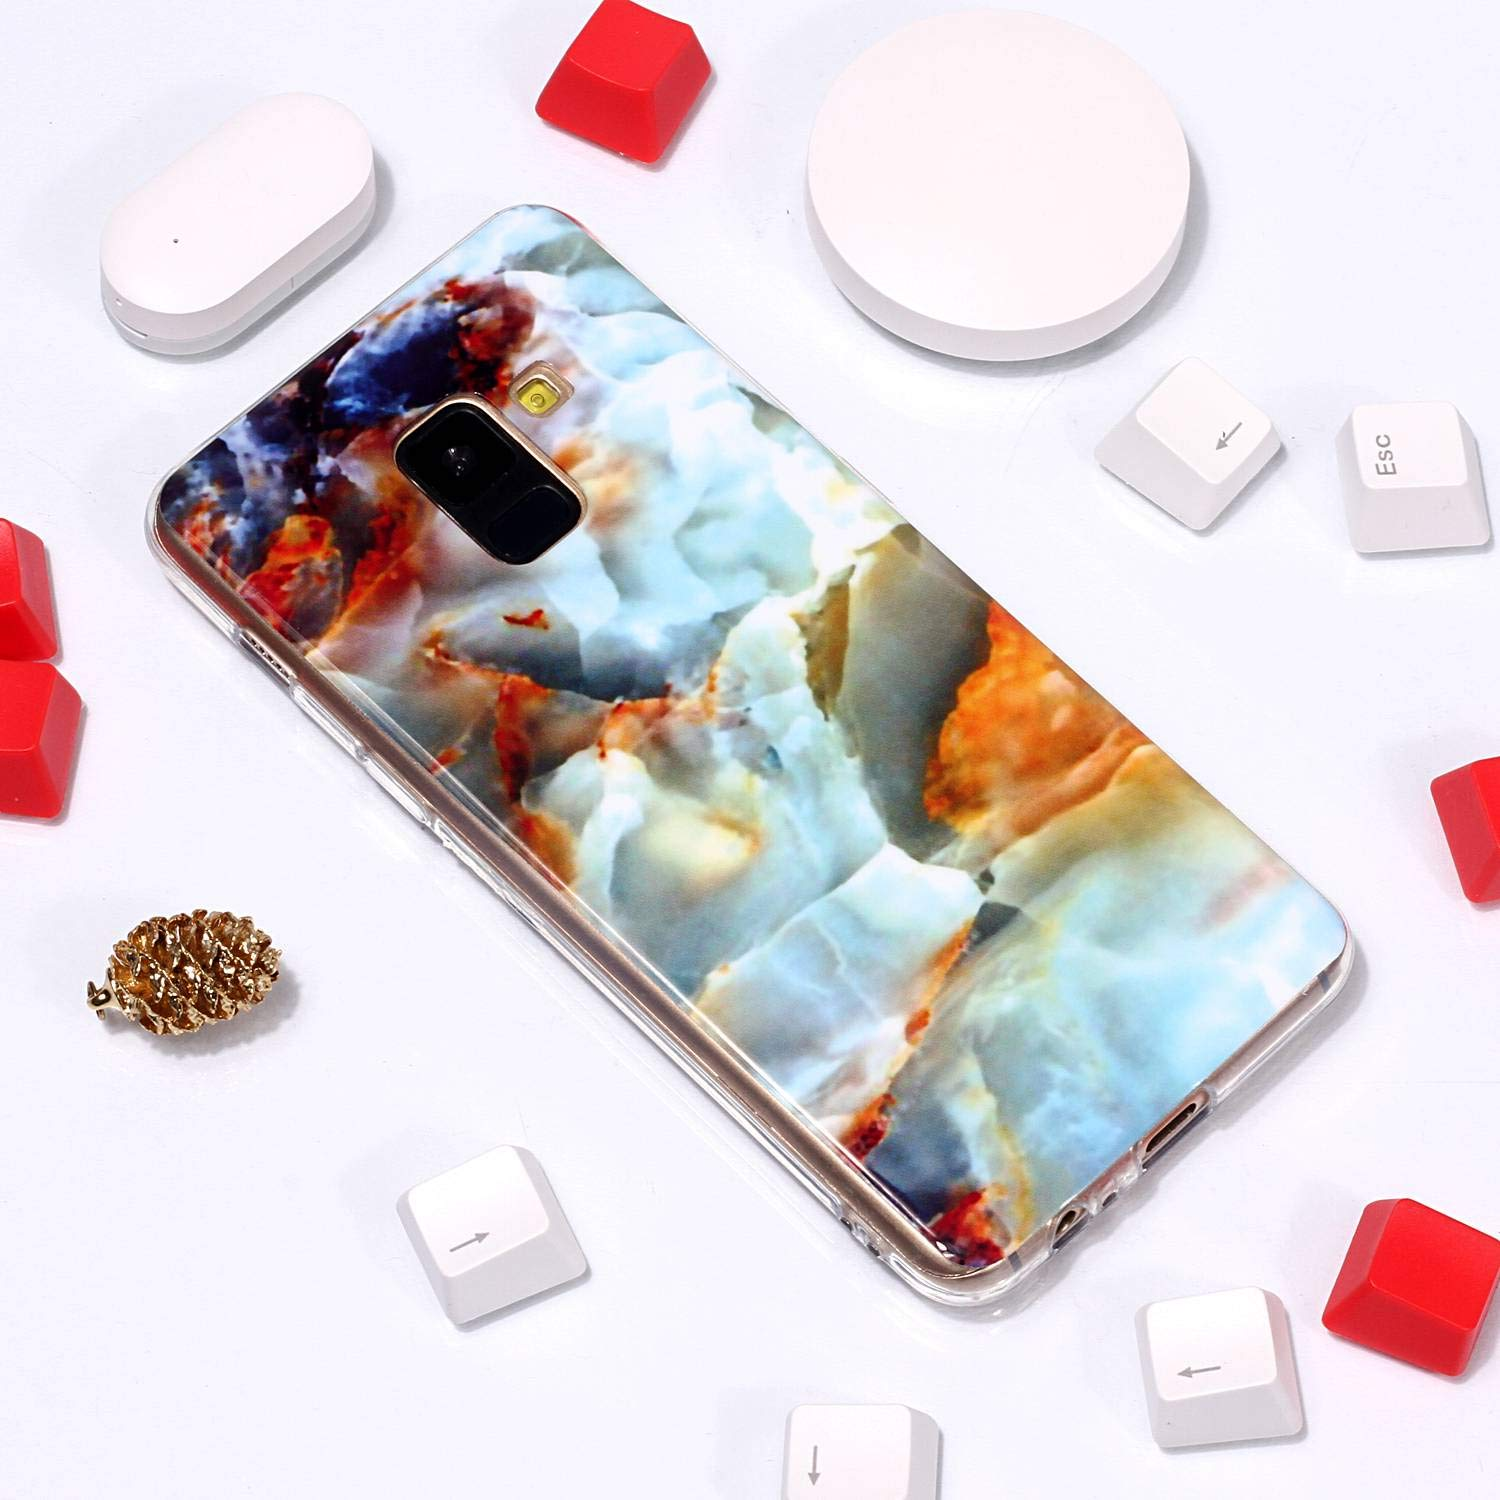 for Samsung Galaxy A6 2018 Marble Case with Screen Protector,Unique Pattern Design Skin Ultra Thin Slim Fit Soft Gel Silicone Case,QFFUN Shockproof Anti-Scratch Protective Back Cover - Fire Cloud by QFFUN (Image #4)